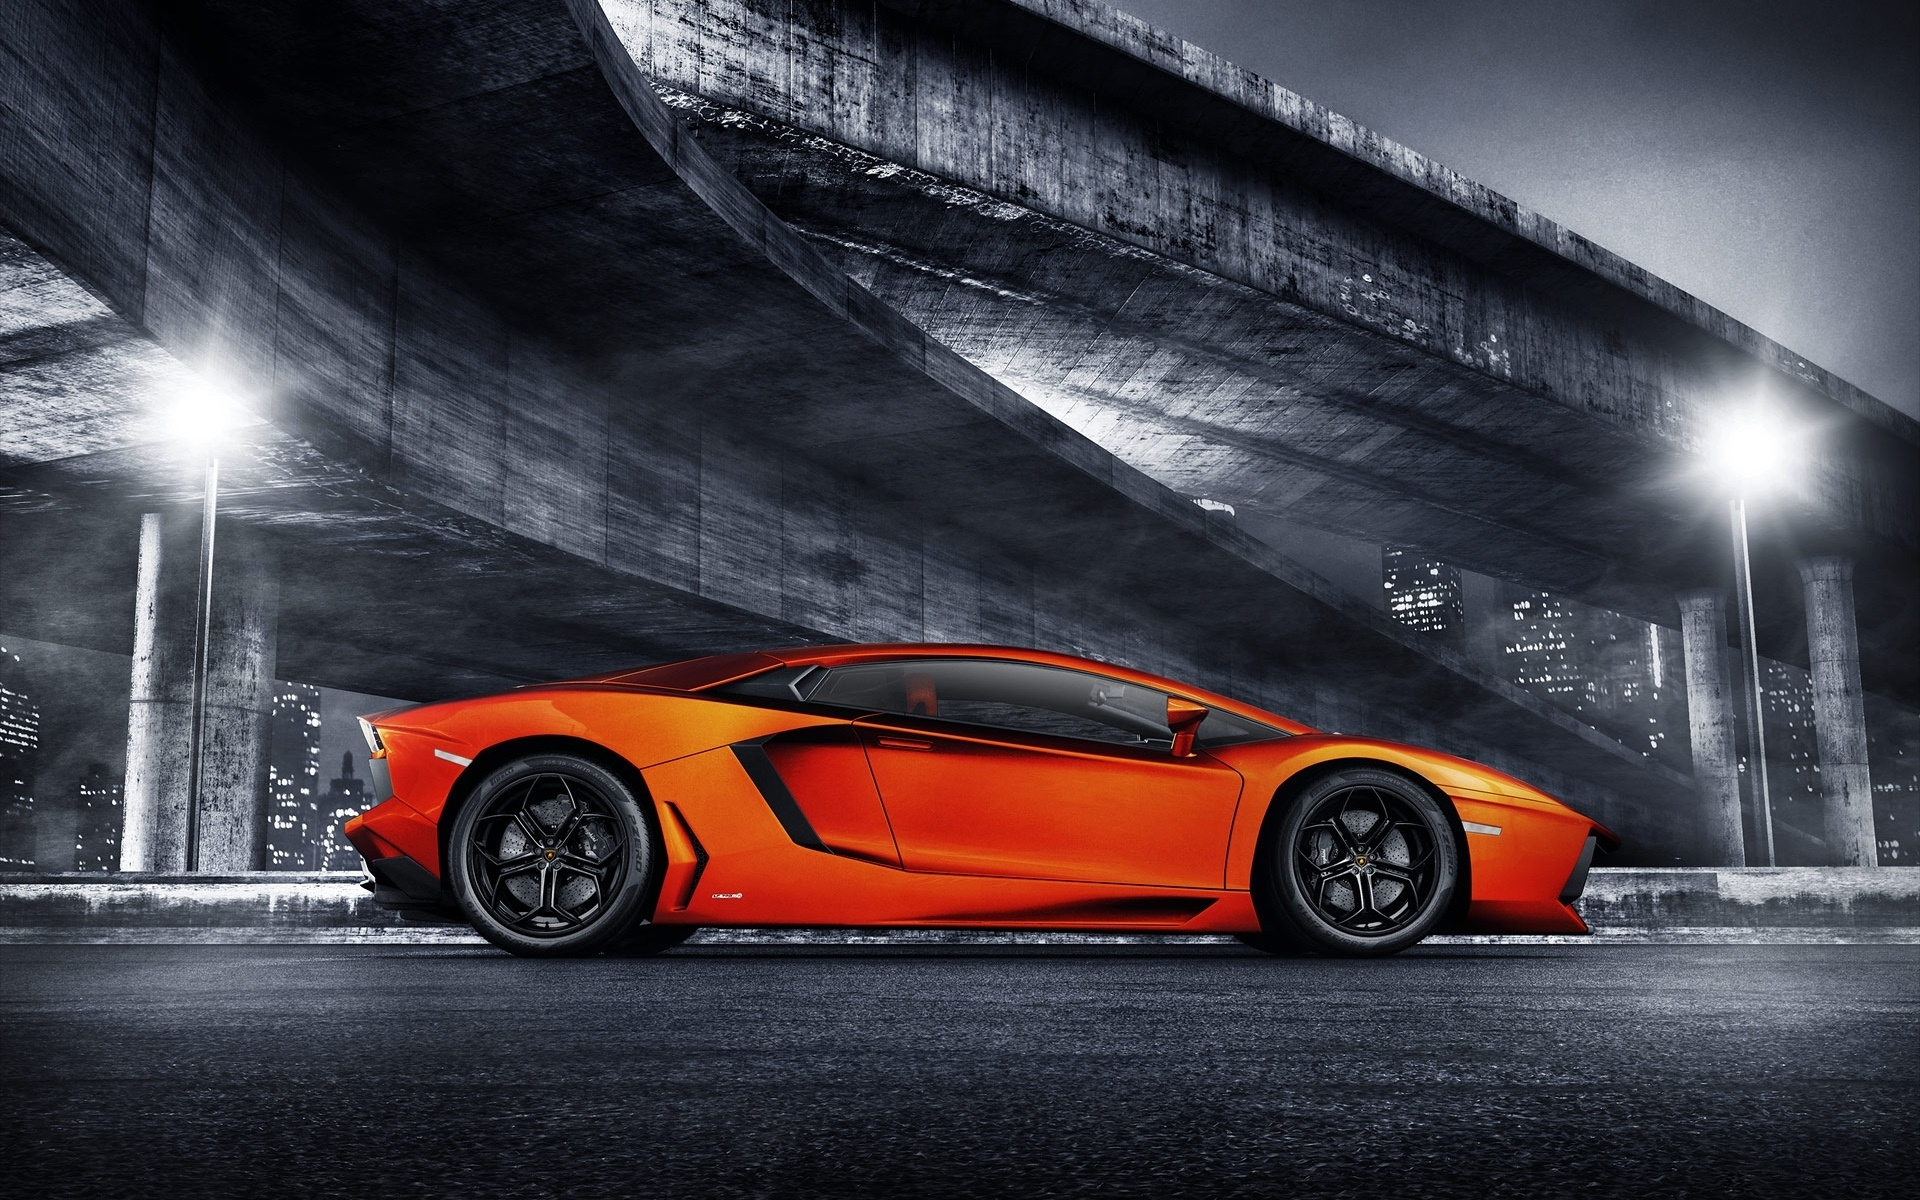 sport car wallpaper wallpapers for free download about (3,350